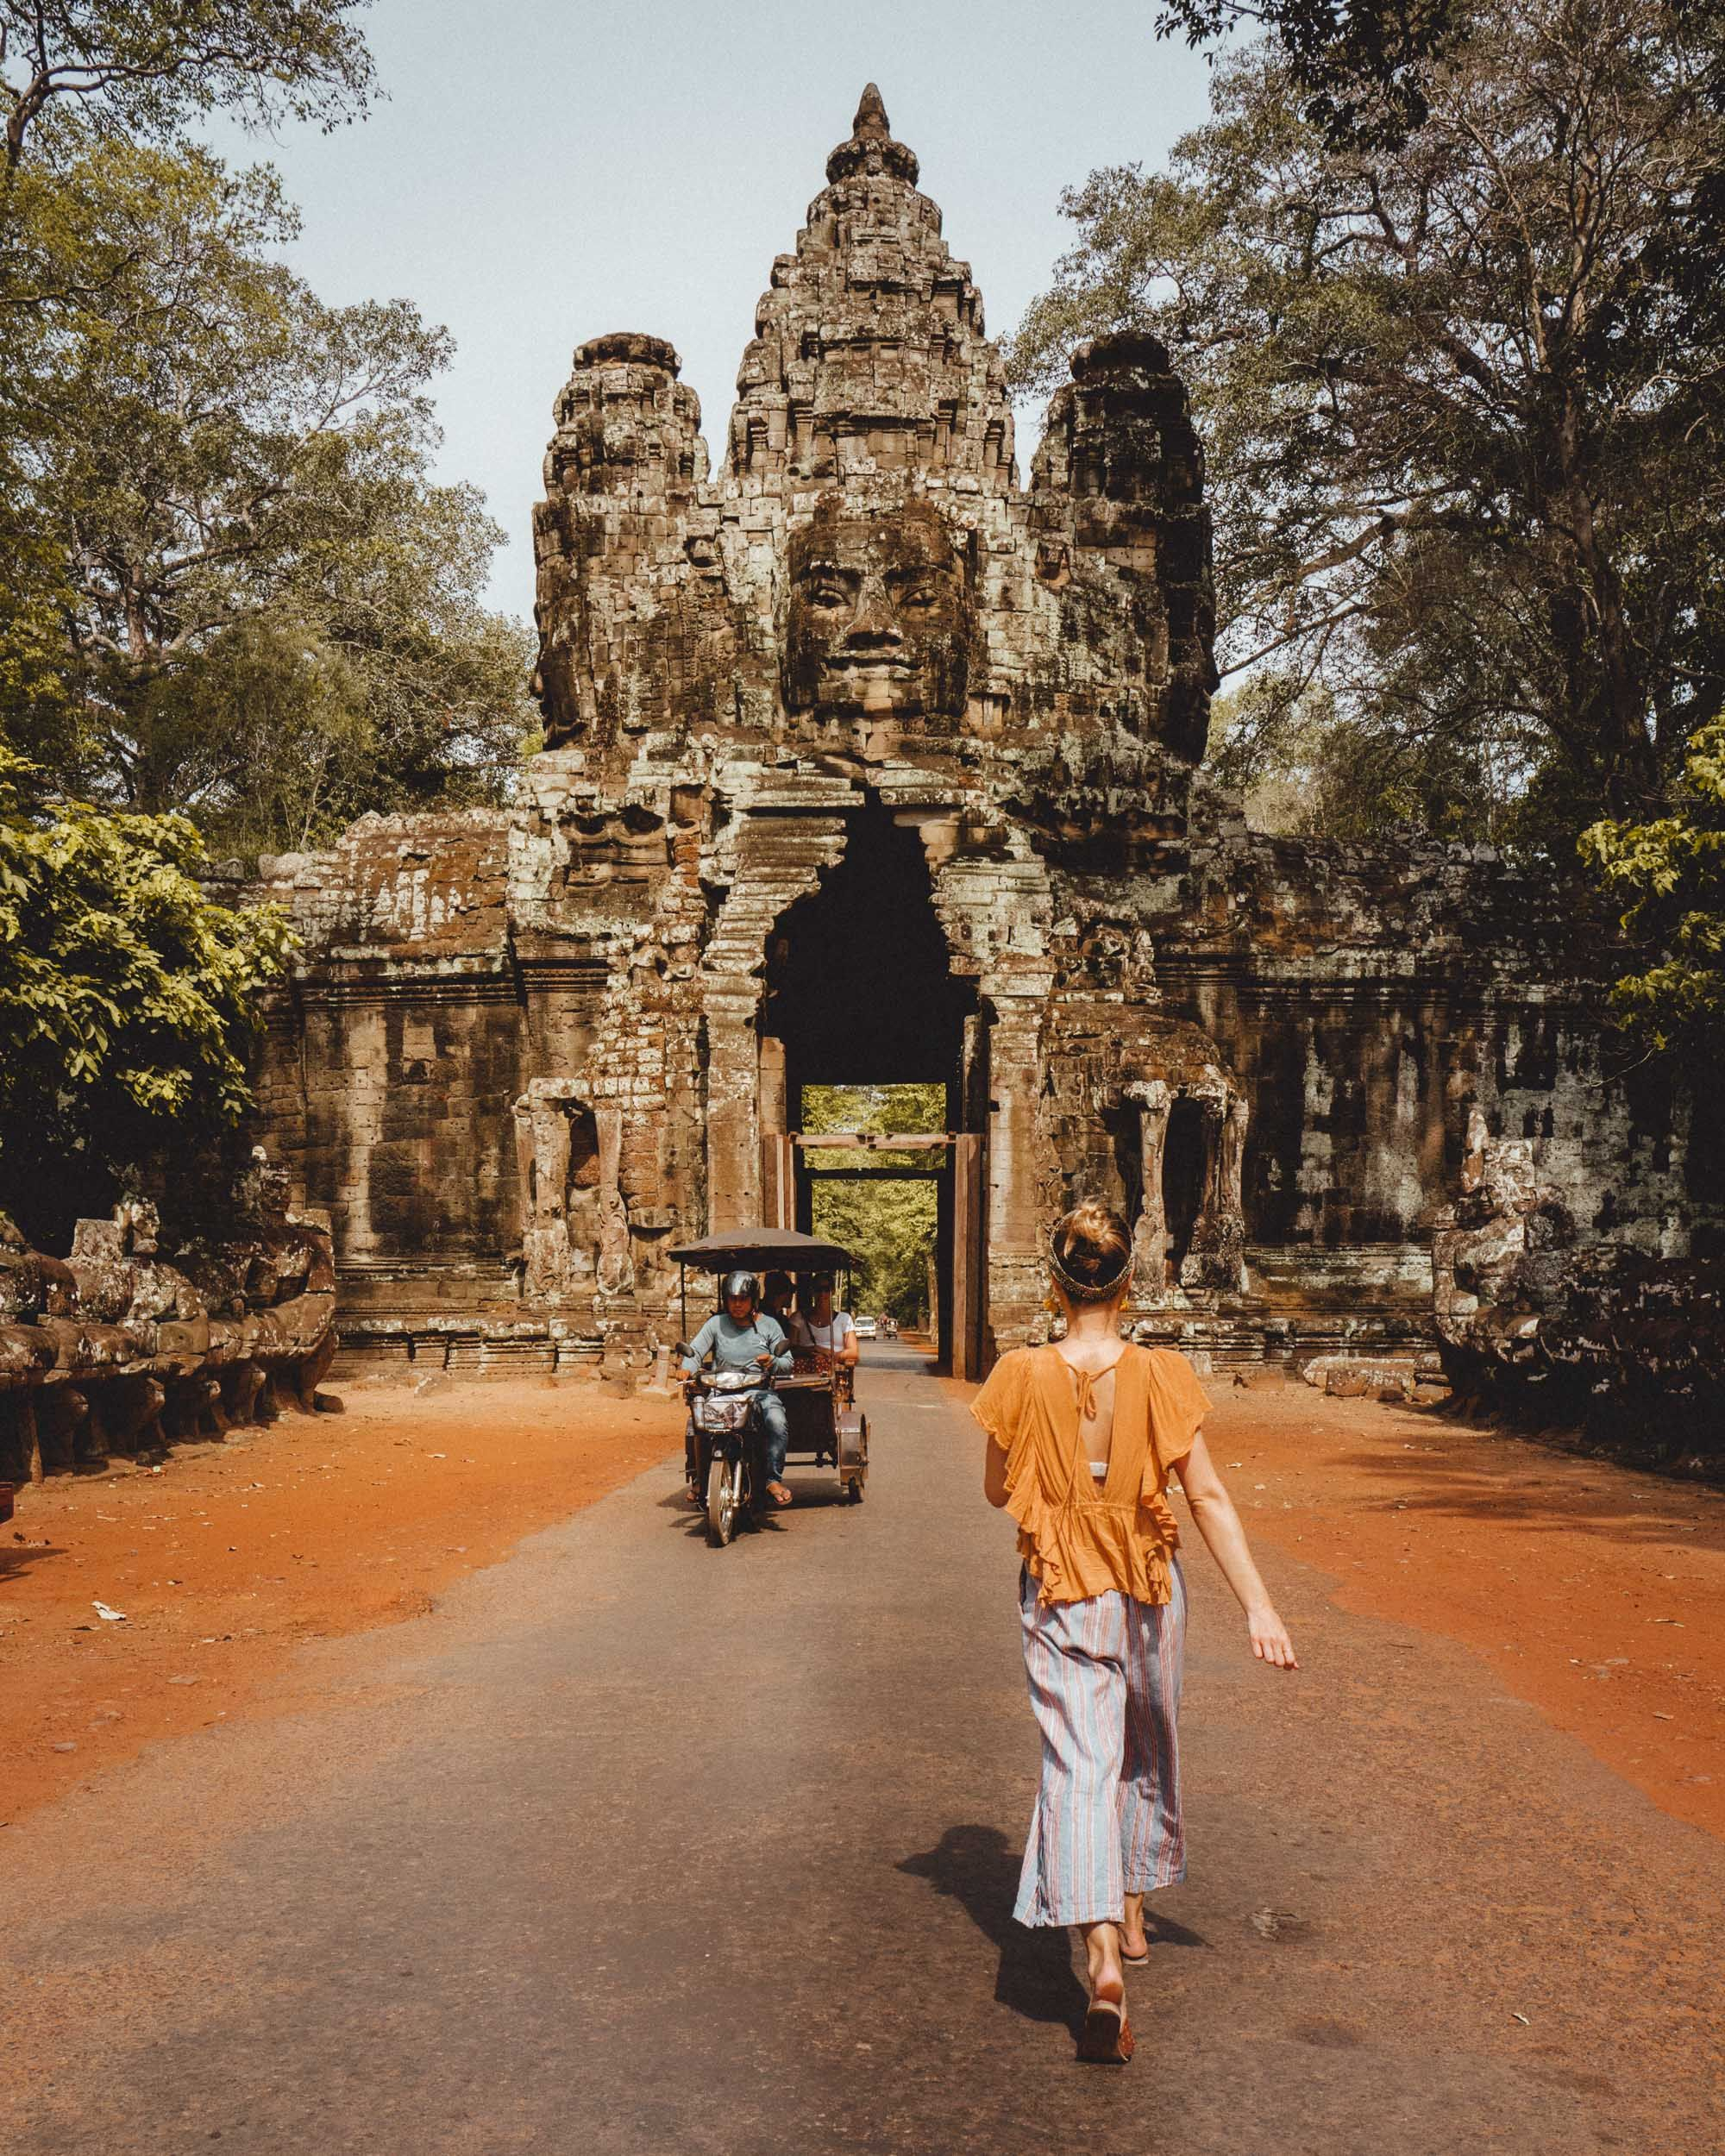 Bayon temple entrance with tuk tuk in Angkor Wat Cambodia via @finduslost | The Angkor Wat temple in Siem Reap, Cambodia is one of the most ancient temples in the entire world and should be at the top of any Southeast Asia travel itinerary. Click through to read the complete guide. #angkorwat #siemreap #cambodia #southeastasia #temples #finduslost